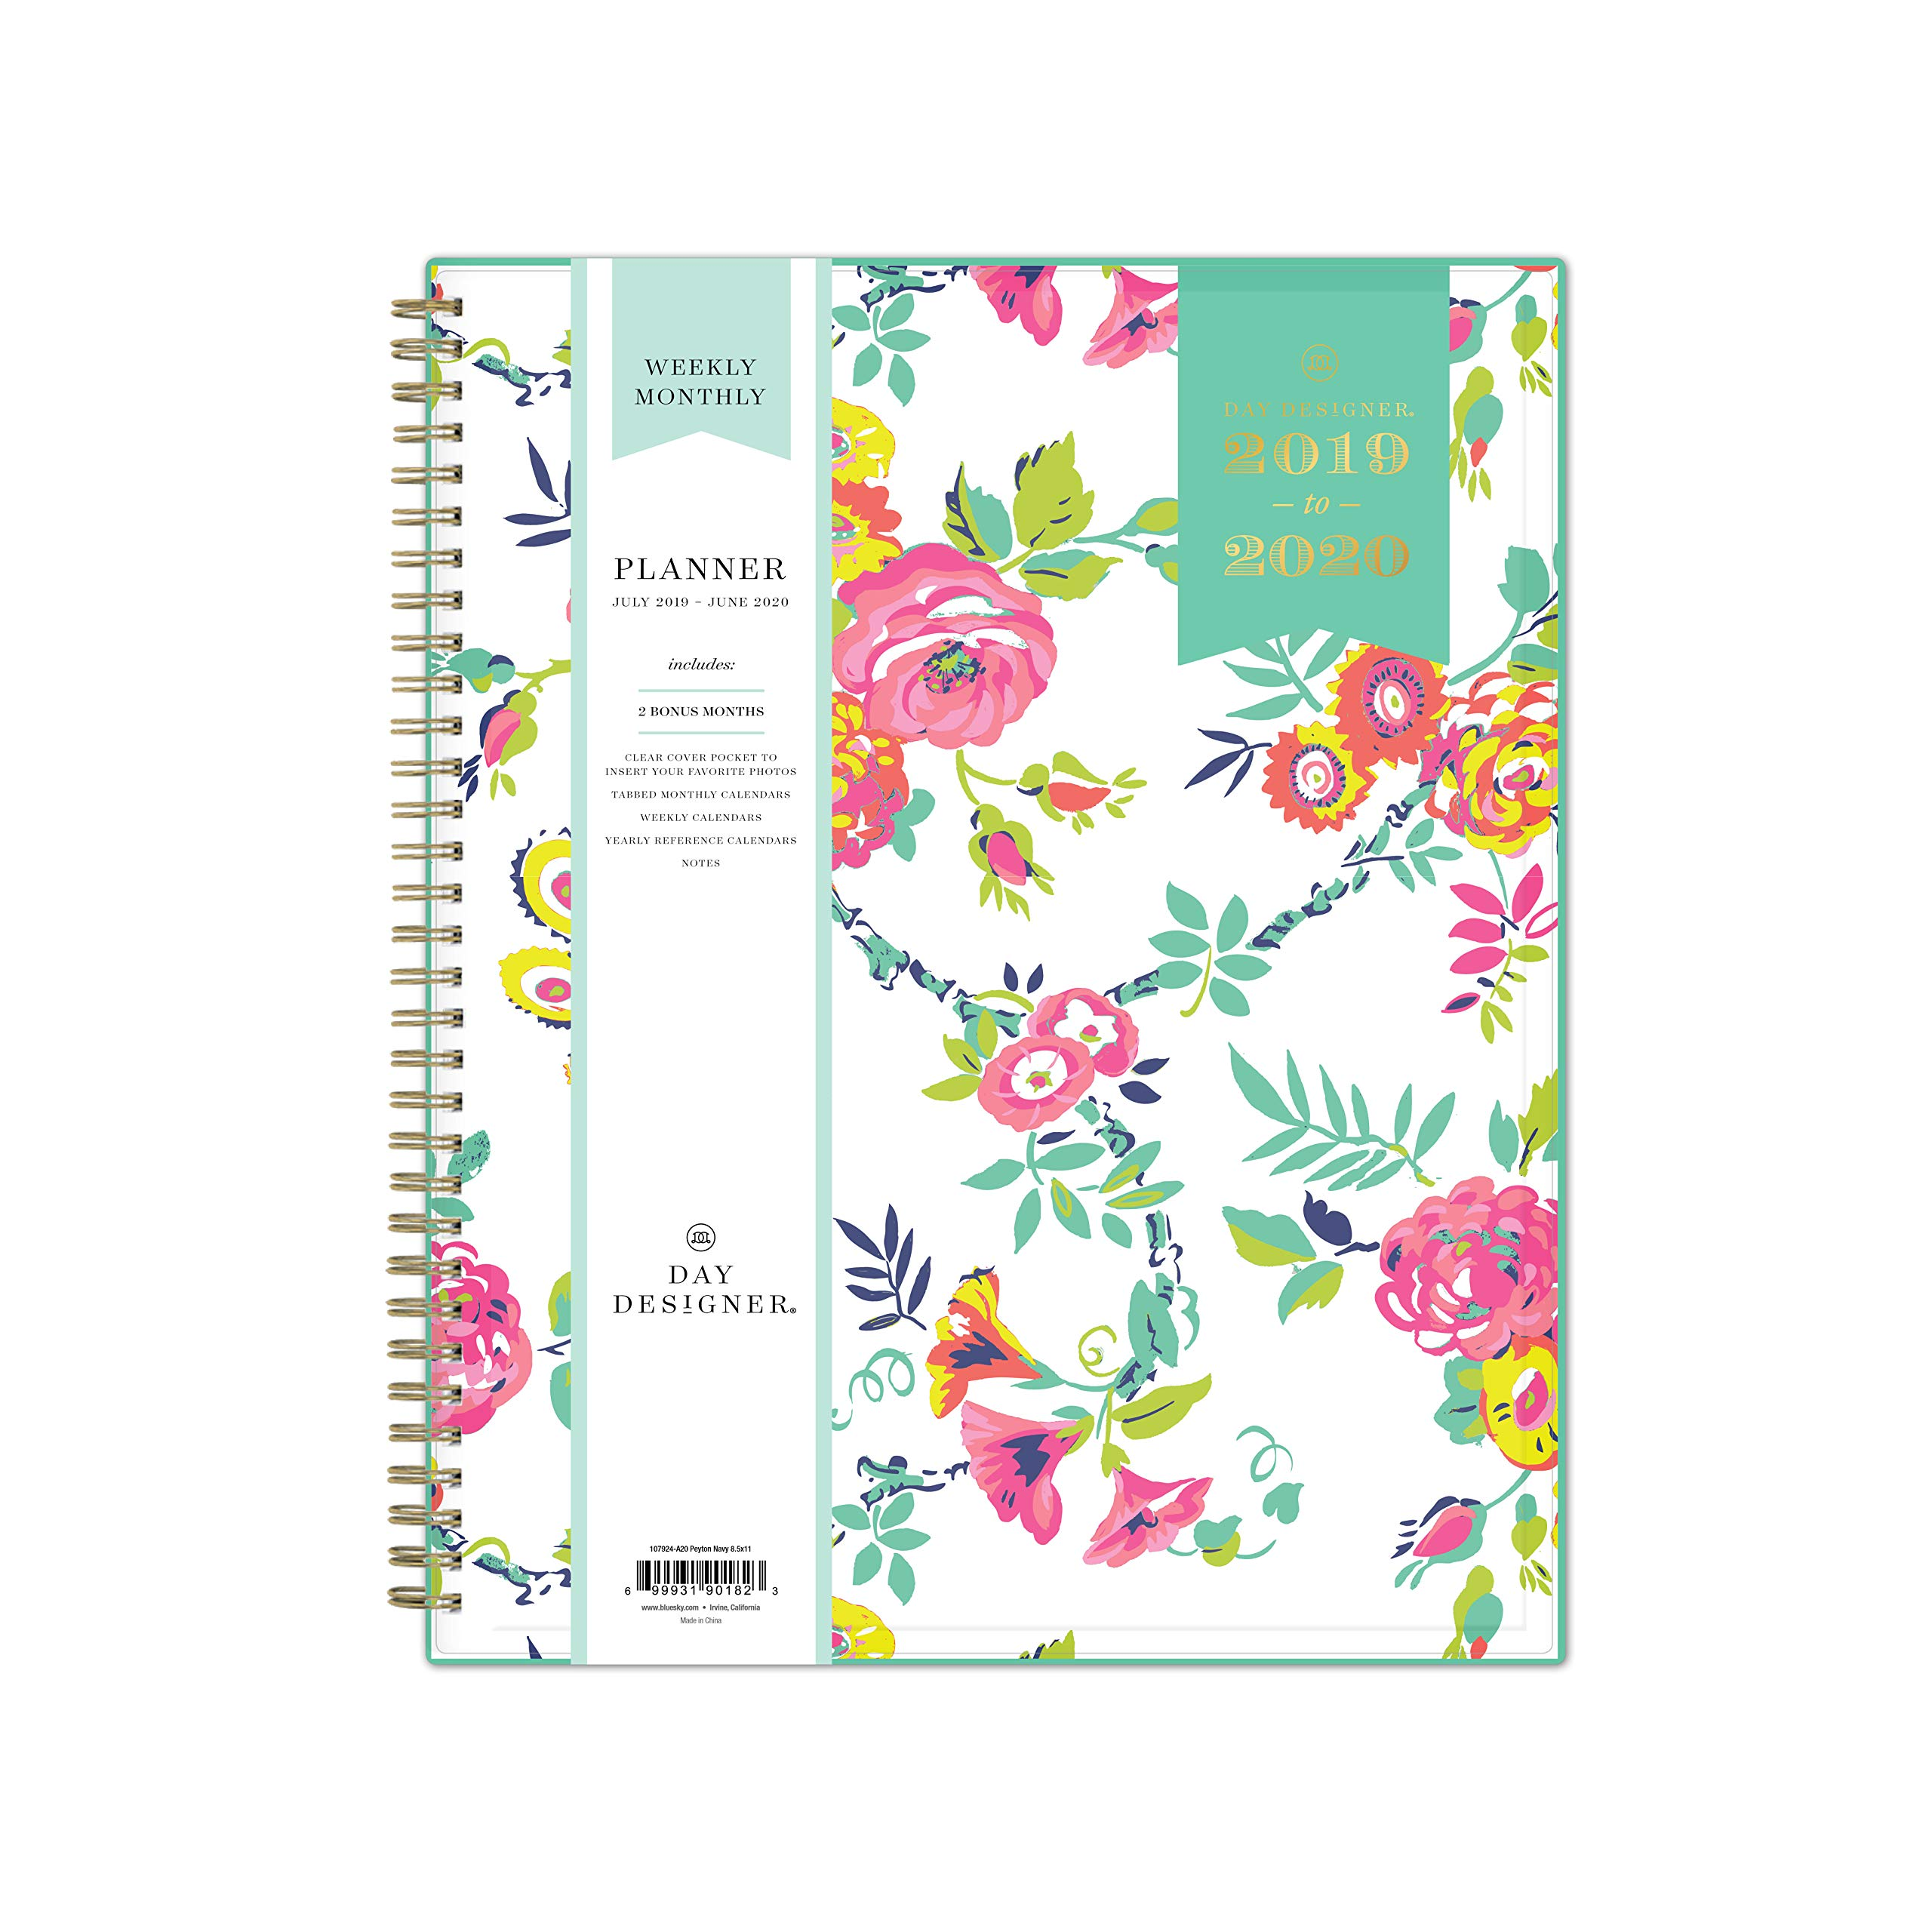 Day Designer for Blue Sky 2019-2020 Academic Year Weekly & Monthly Planner, Flexible Cover, Twin-Wire Binding, 8.5'' x 11'', Peyton White